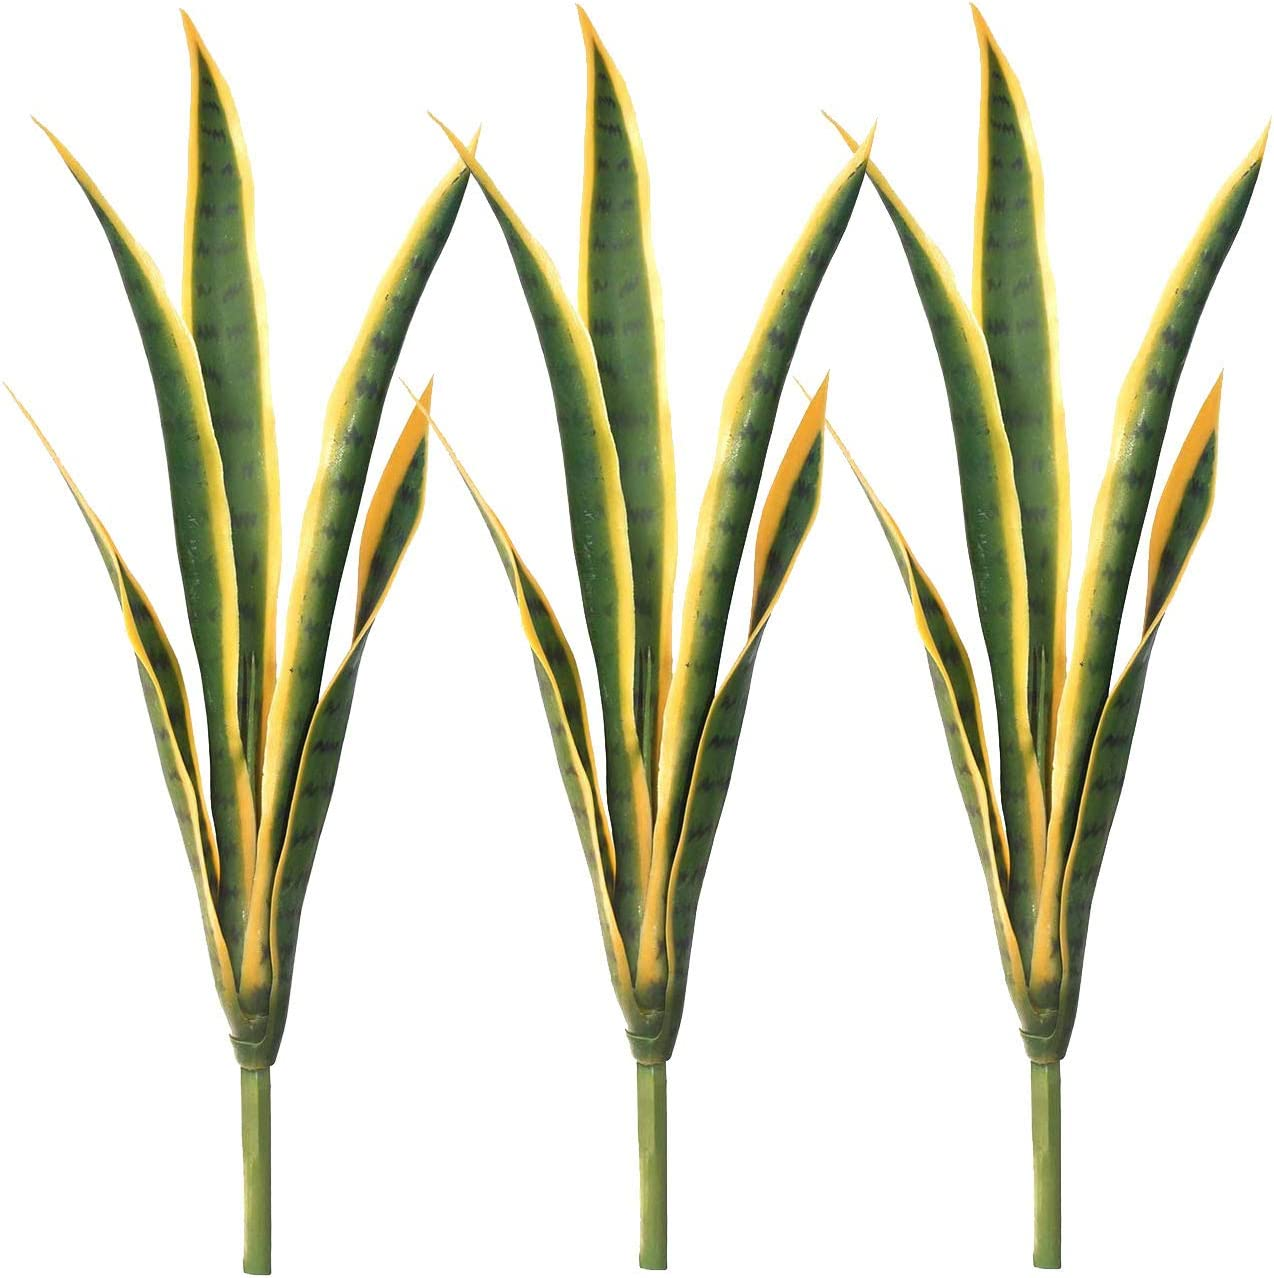 "3 Pcs Artificial Plants 27"" Sansevieria Snake Plant Plastic Greenery Perfect Faux Agave Plant for Home Office Indoor and Outdoo Décor (Yellow, 3 Pack)"